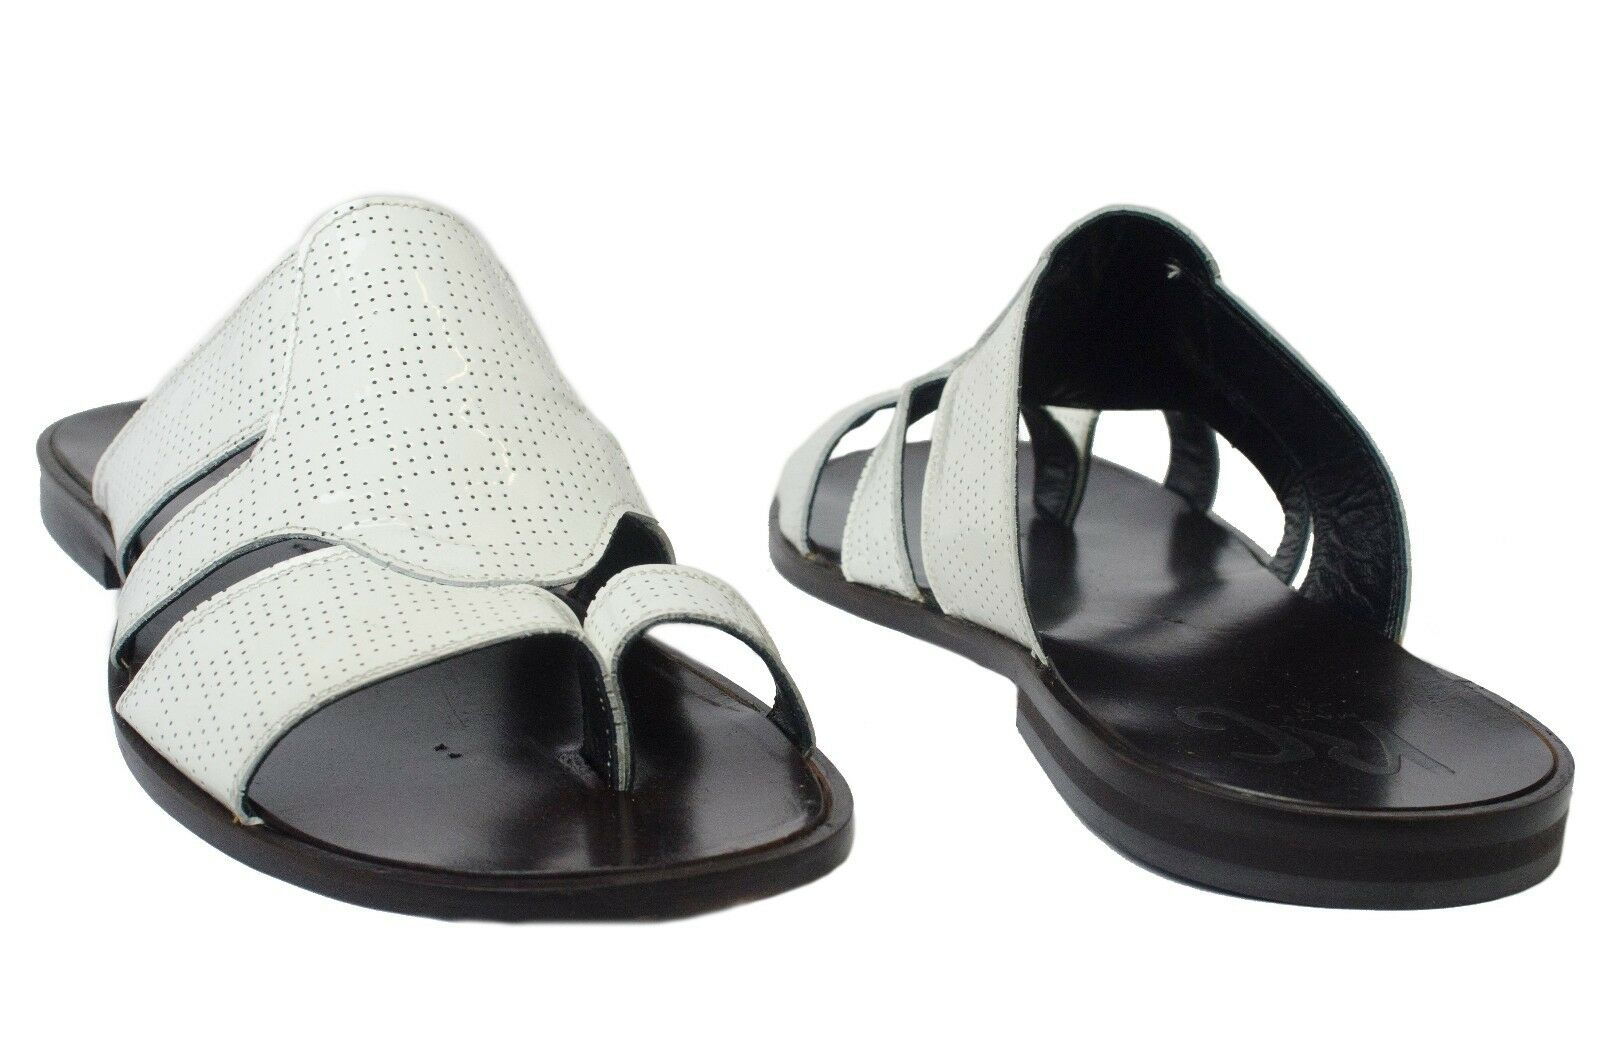 Roberto Guerrini S2002 Italian mens Weiß patent leather push sandals in toe sandals push 8ad055